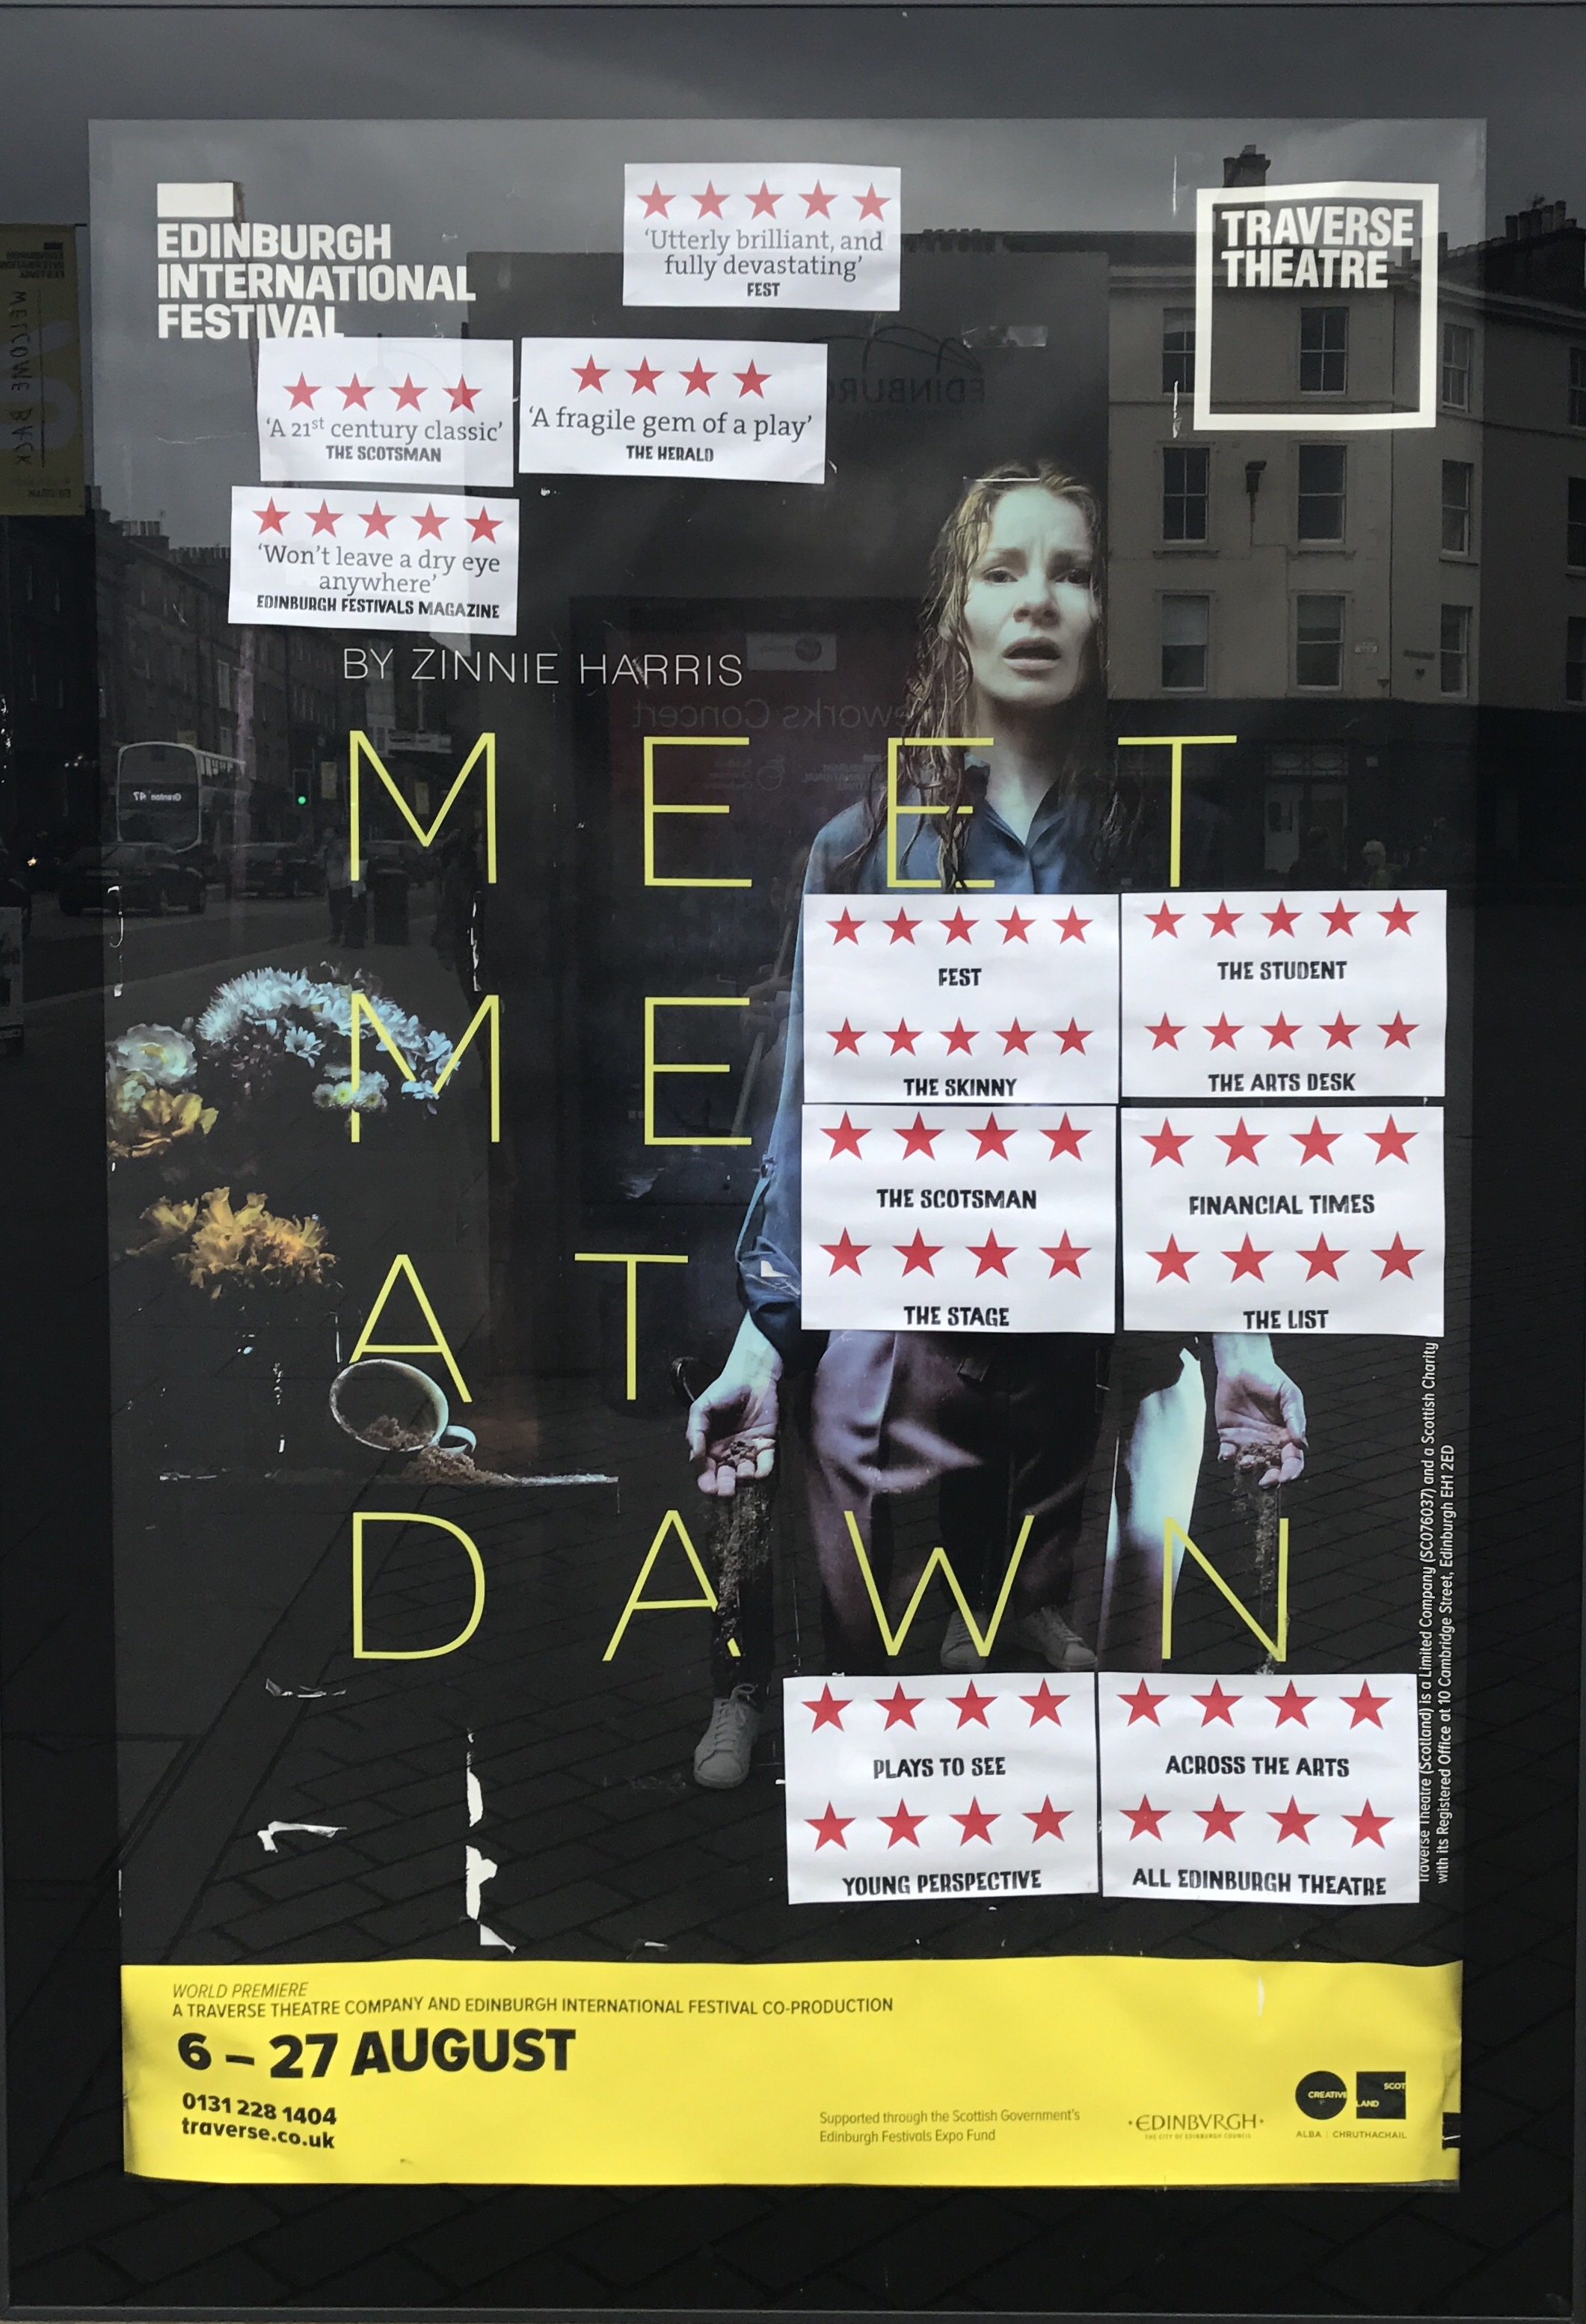 W&G are proud to have worked with Traverse Theatre on the their 2017 Edinburgh International Festival production of 'Meet Me At Dawn'.